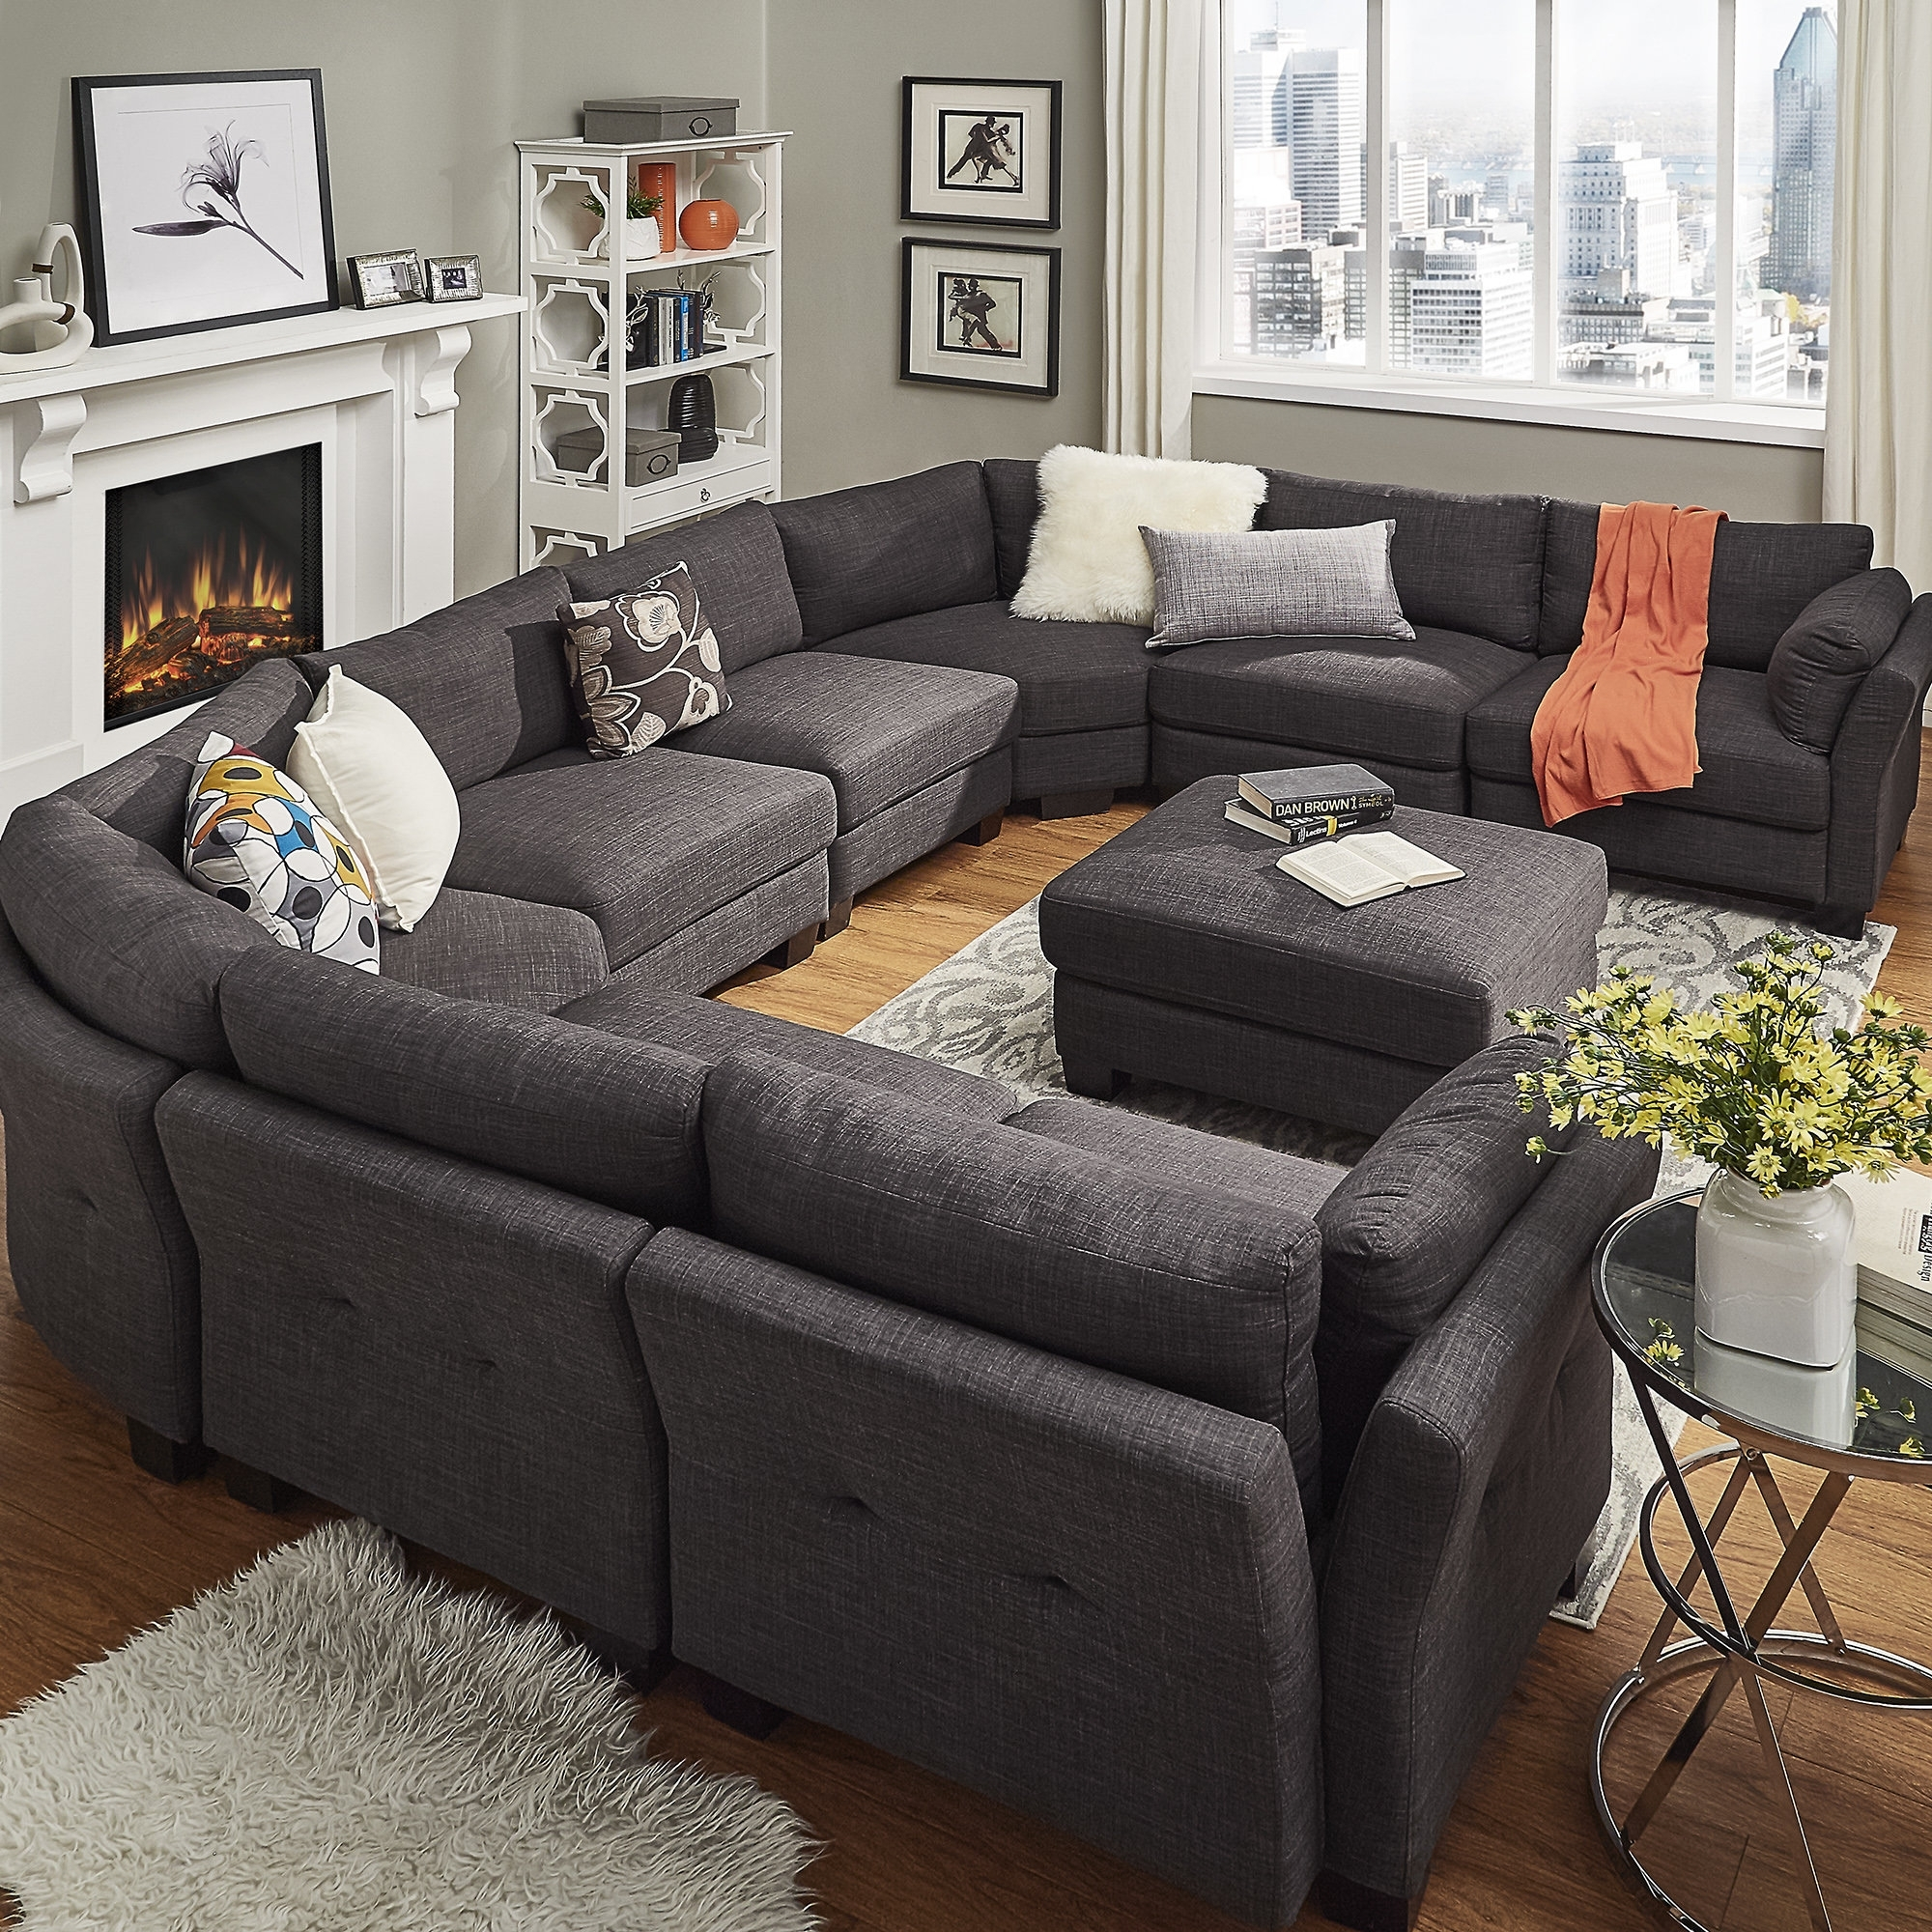 Mercury Row Alkmene Sectional Collection & Reviews | Wayfair Pertaining To Mesa Foam 2 Piece Sectionals (View 23 of 25)